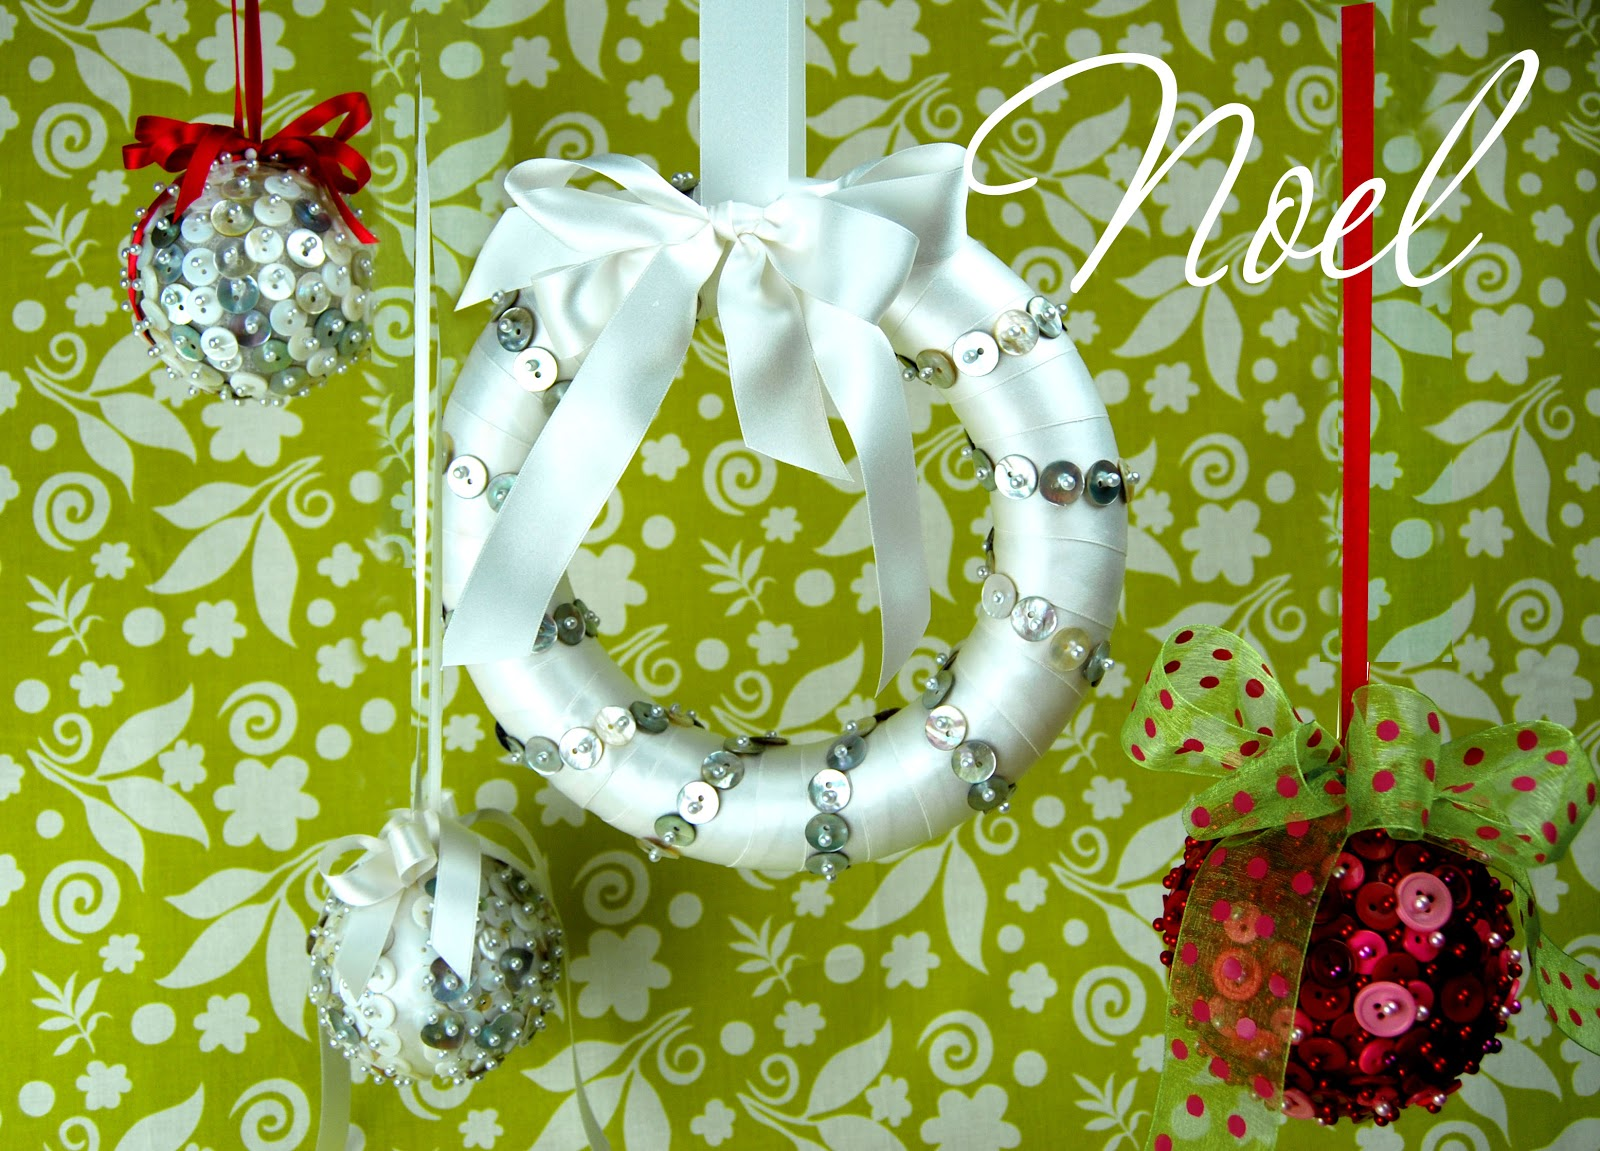 Sew Wendy: Holiday Decorating with Buttons